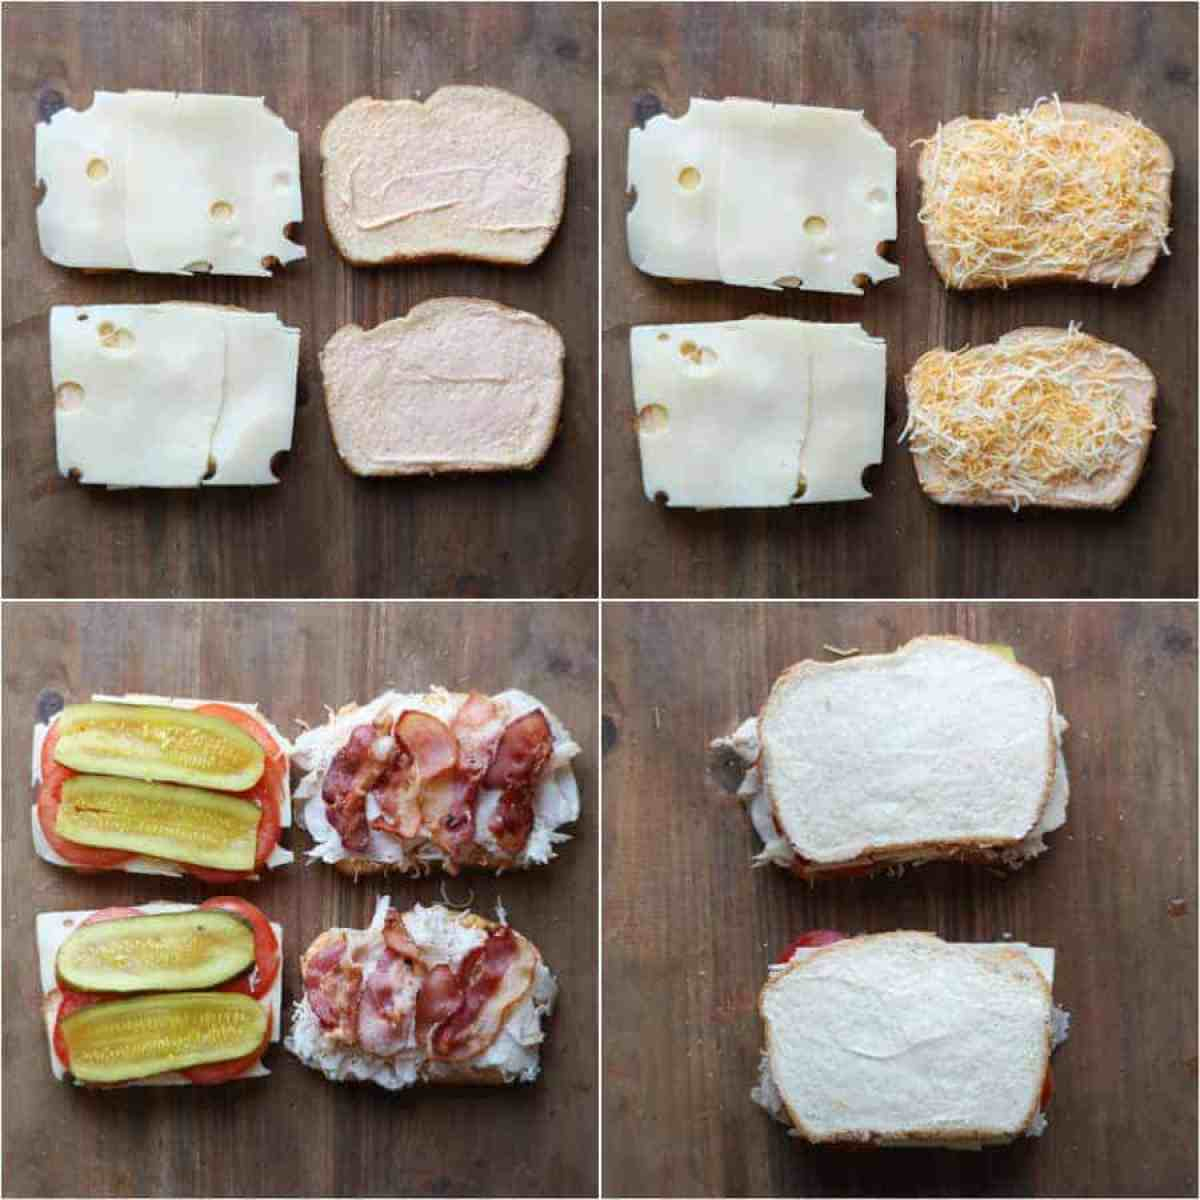 Step by step indtruvitons on how to male turkey bacon grilled cheese recipe.